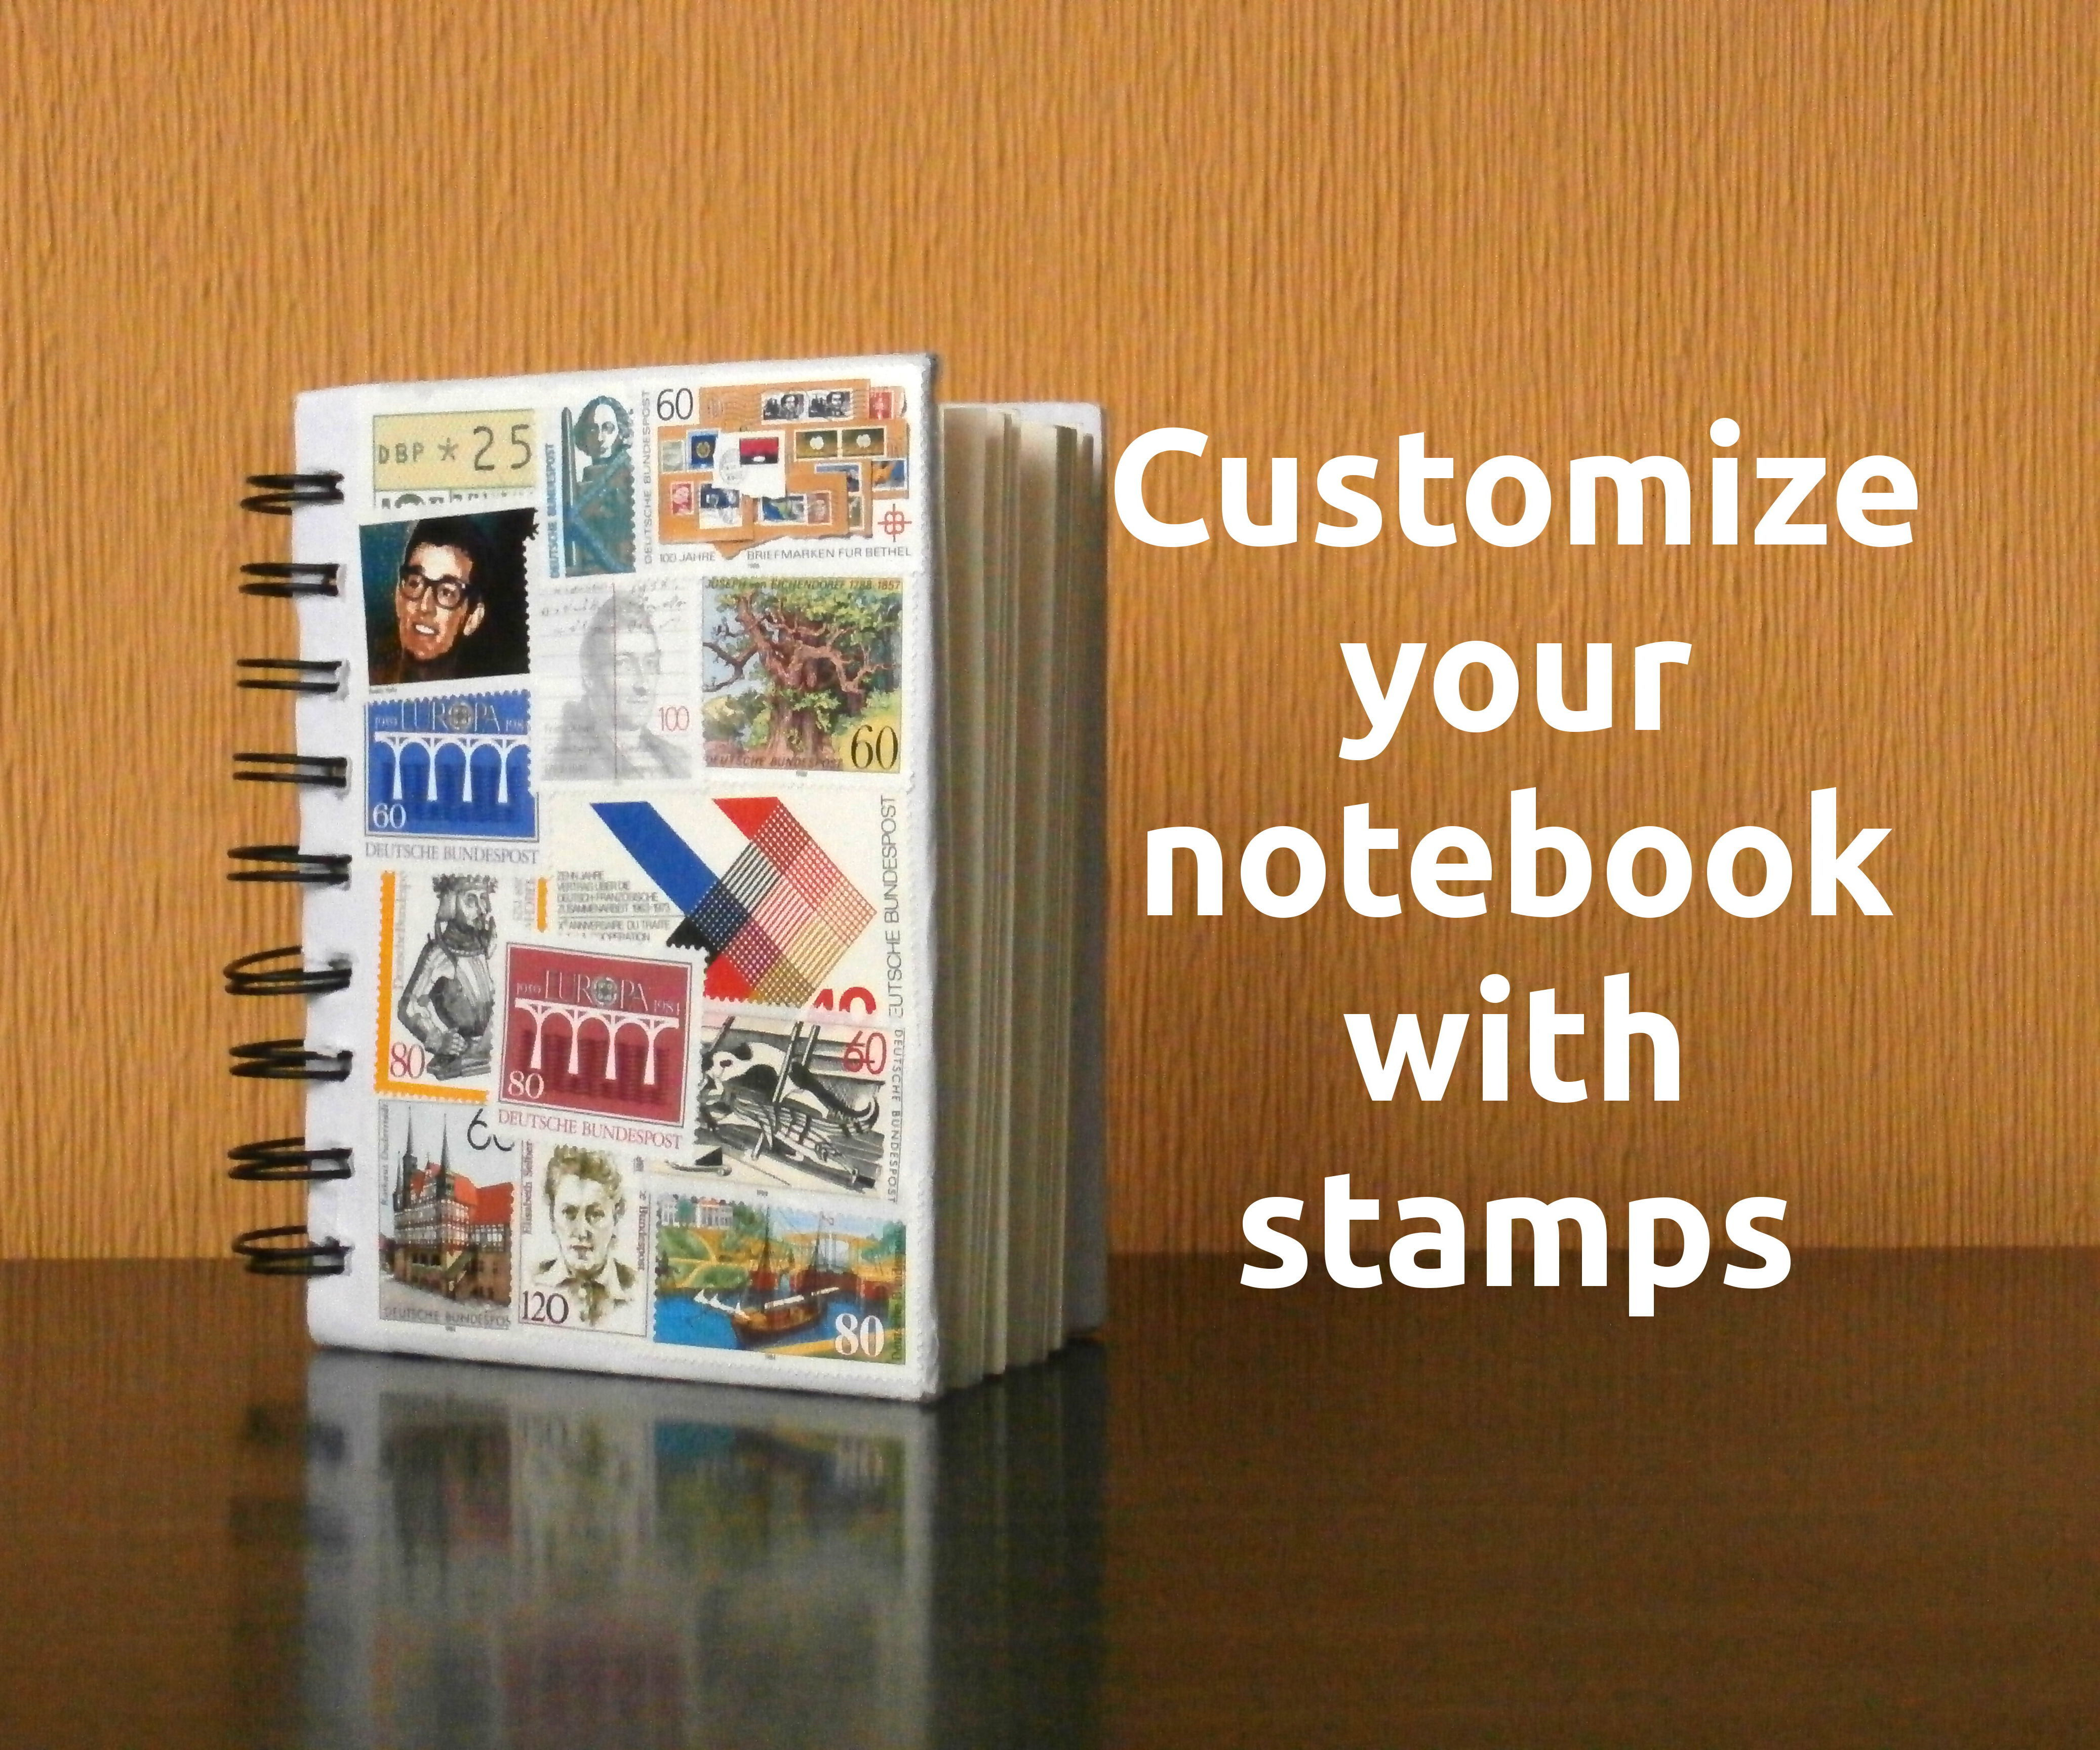 Customize your notebook (or any object) with stamps